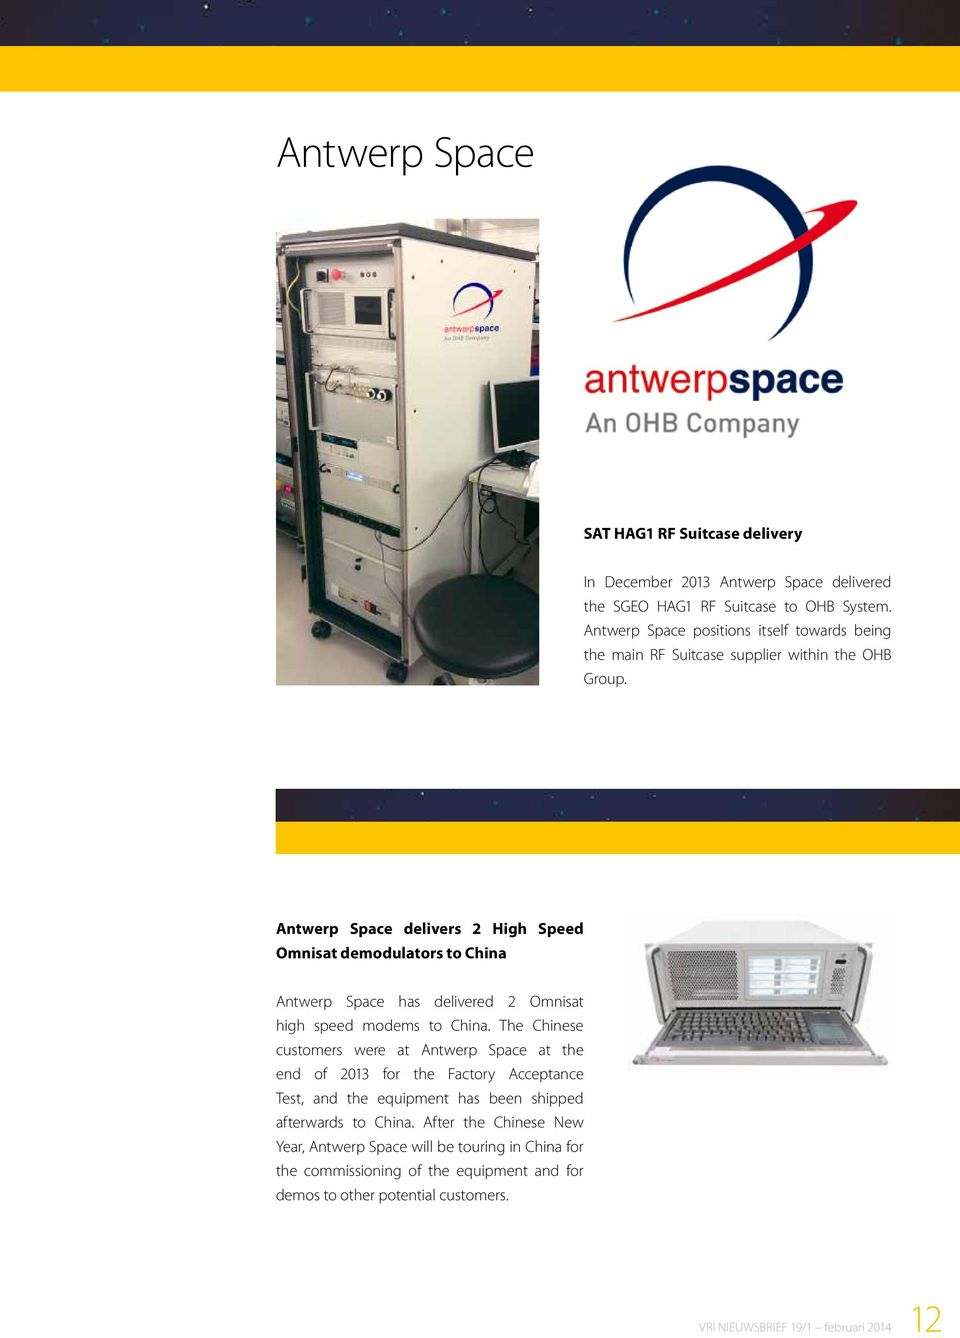 Antwerp Space delivers 2 High Speed Omnisat demodulators to China Antwerp Space has delivered 2 Omnisat high speed modems to China.